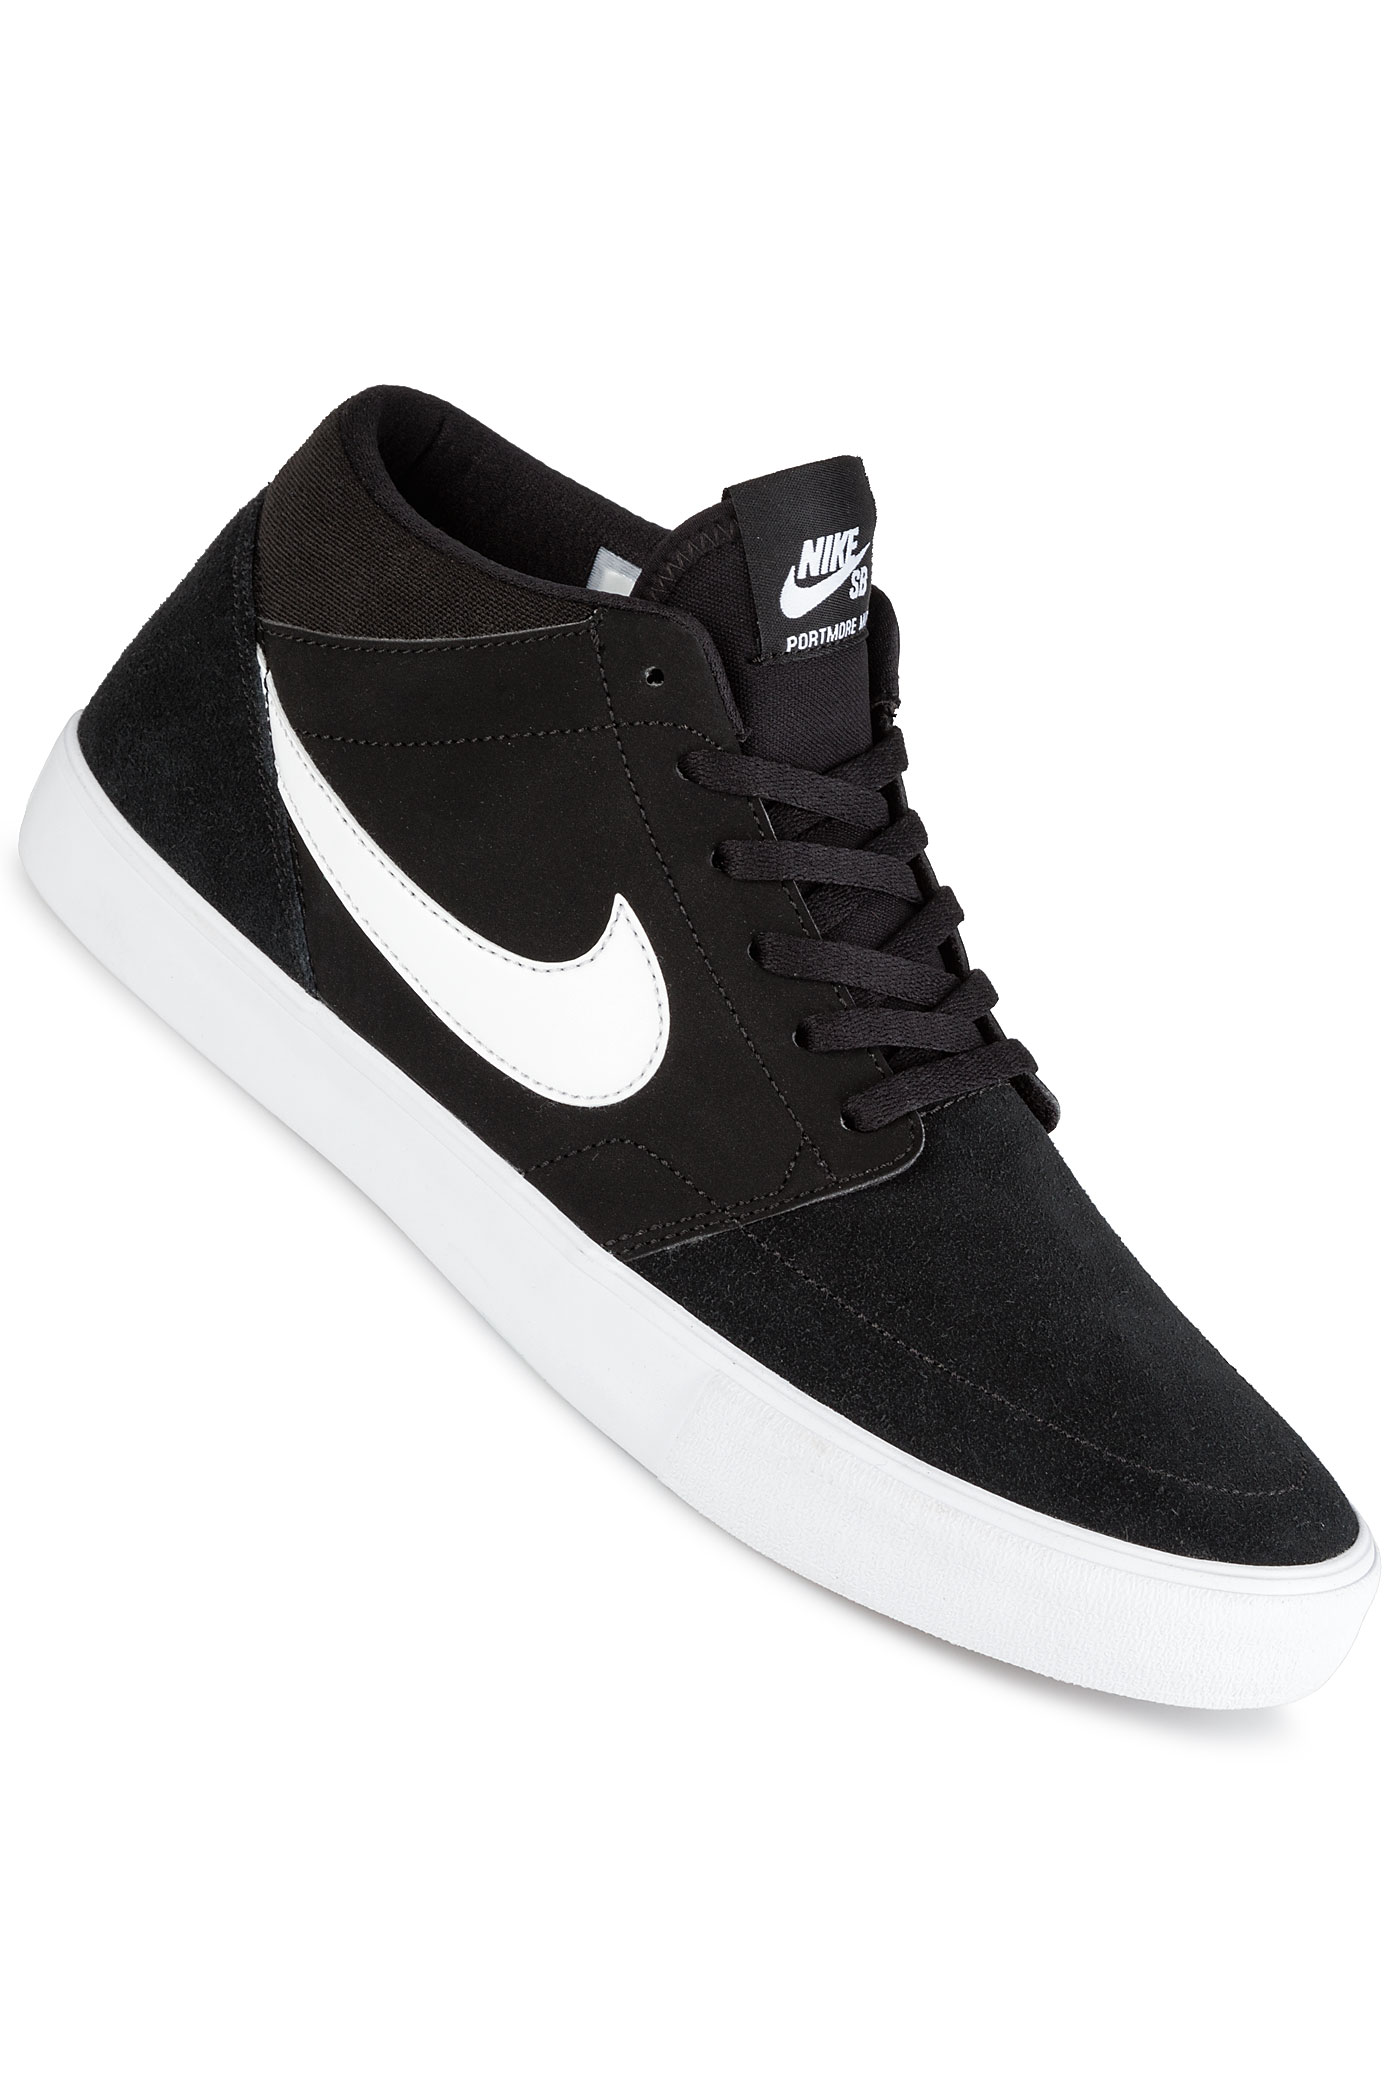 nike sb solarsoft portmore ii mid schuh black white kaufen bei skatedeluxe. Black Bedroom Furniture Sets. Home Design Ideas